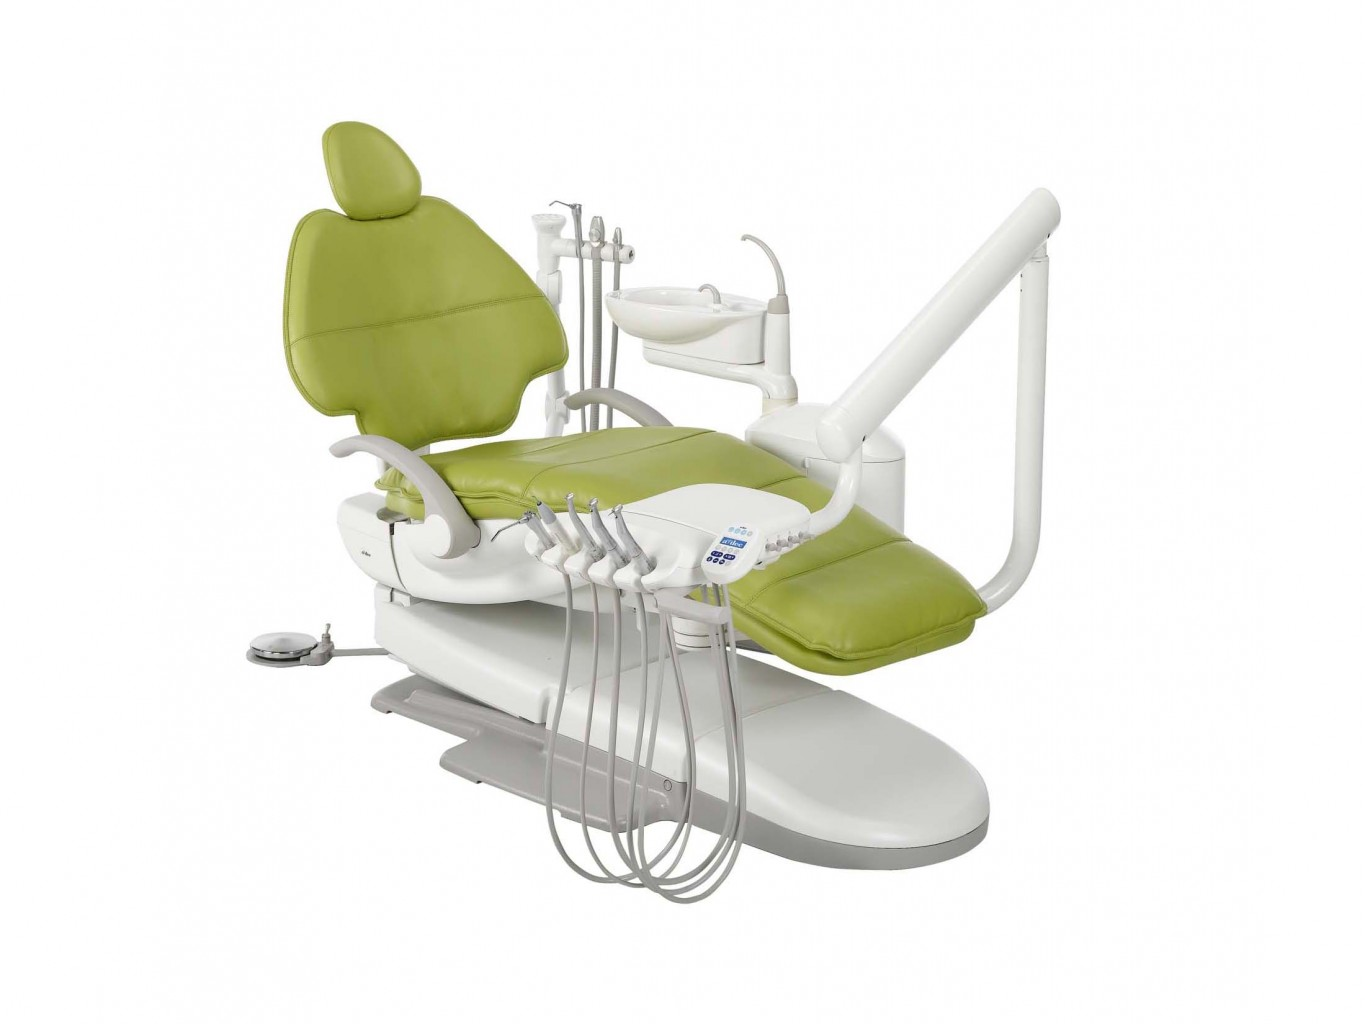 A-dec Dental Equipment Dental Chairs | Surgery Design, Equipment